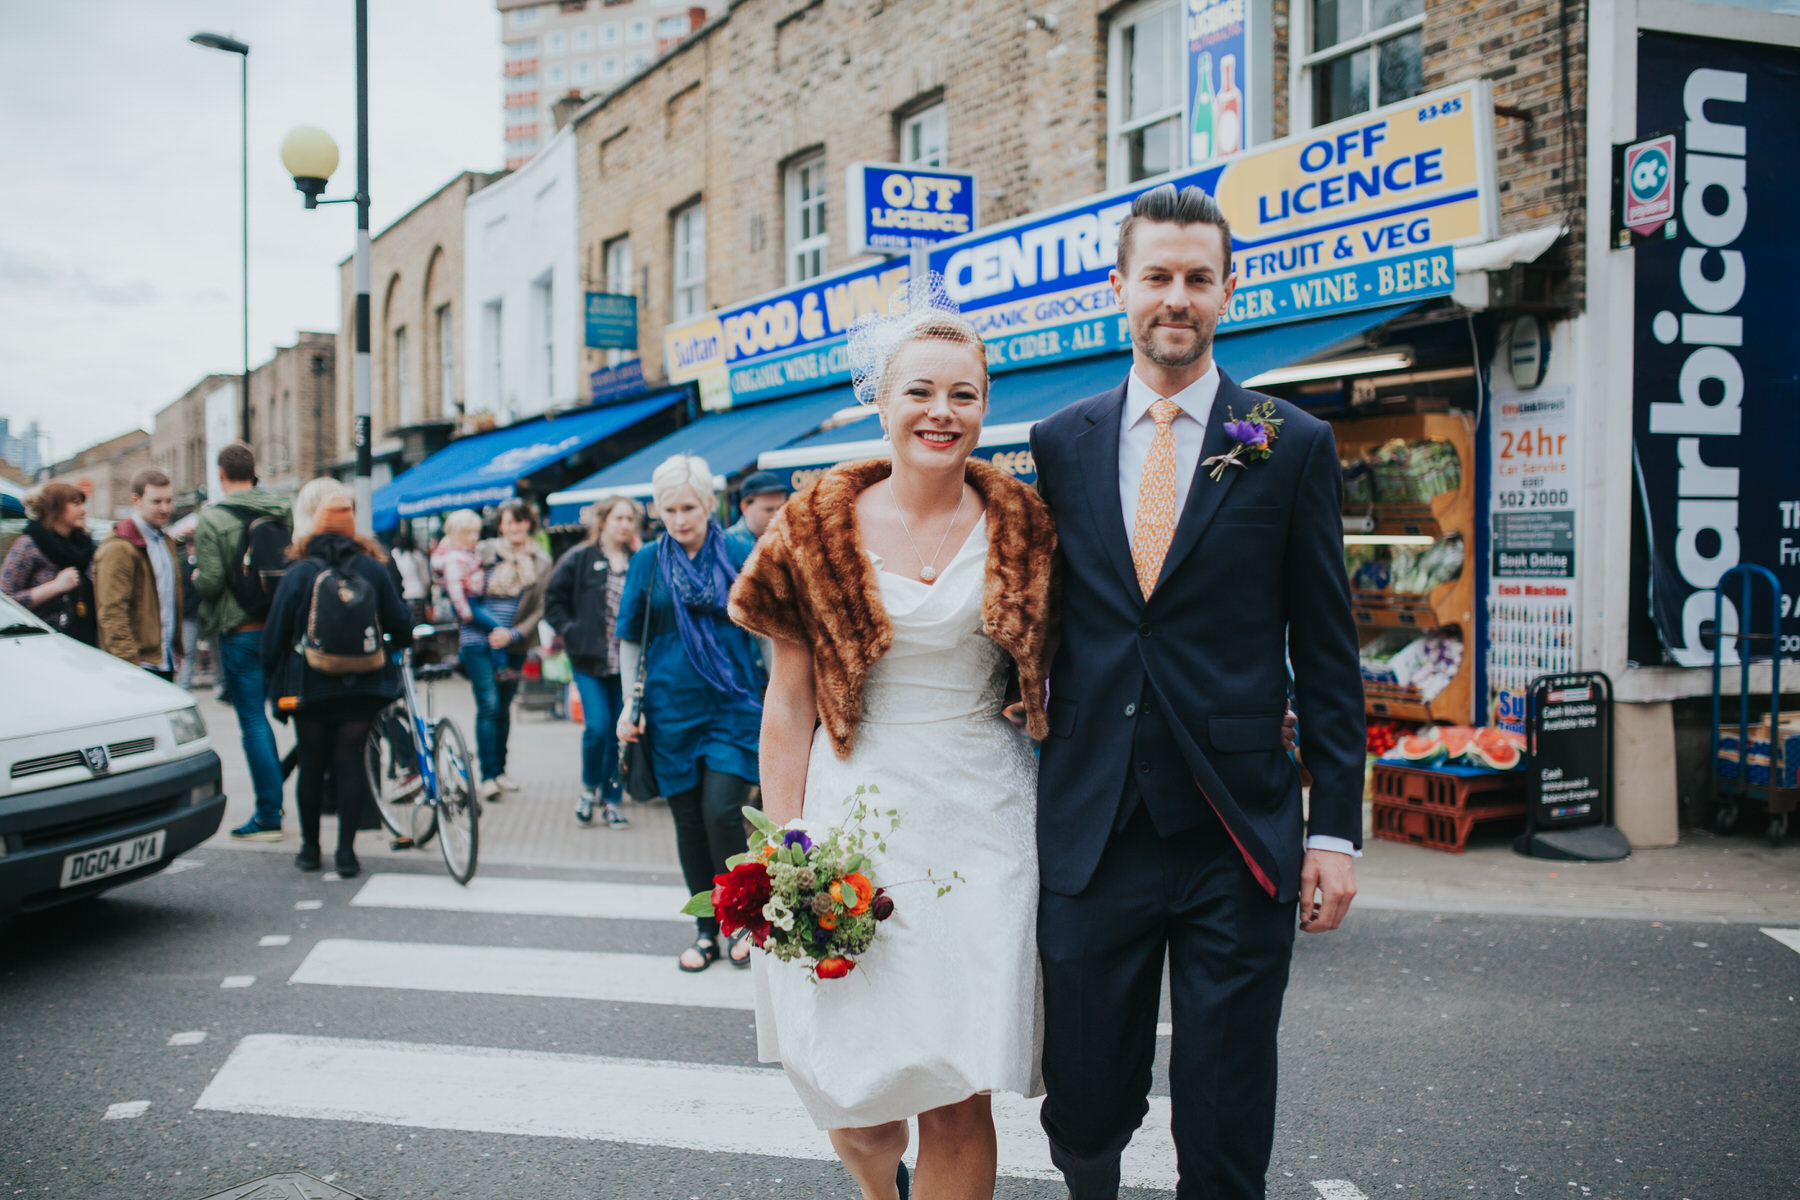 MS-Londesborough-Pub-wedding-Hackney-alternative-photographer-38-wedding-portraits-Broadway-market-quirky-couple-crossing-road.jpg